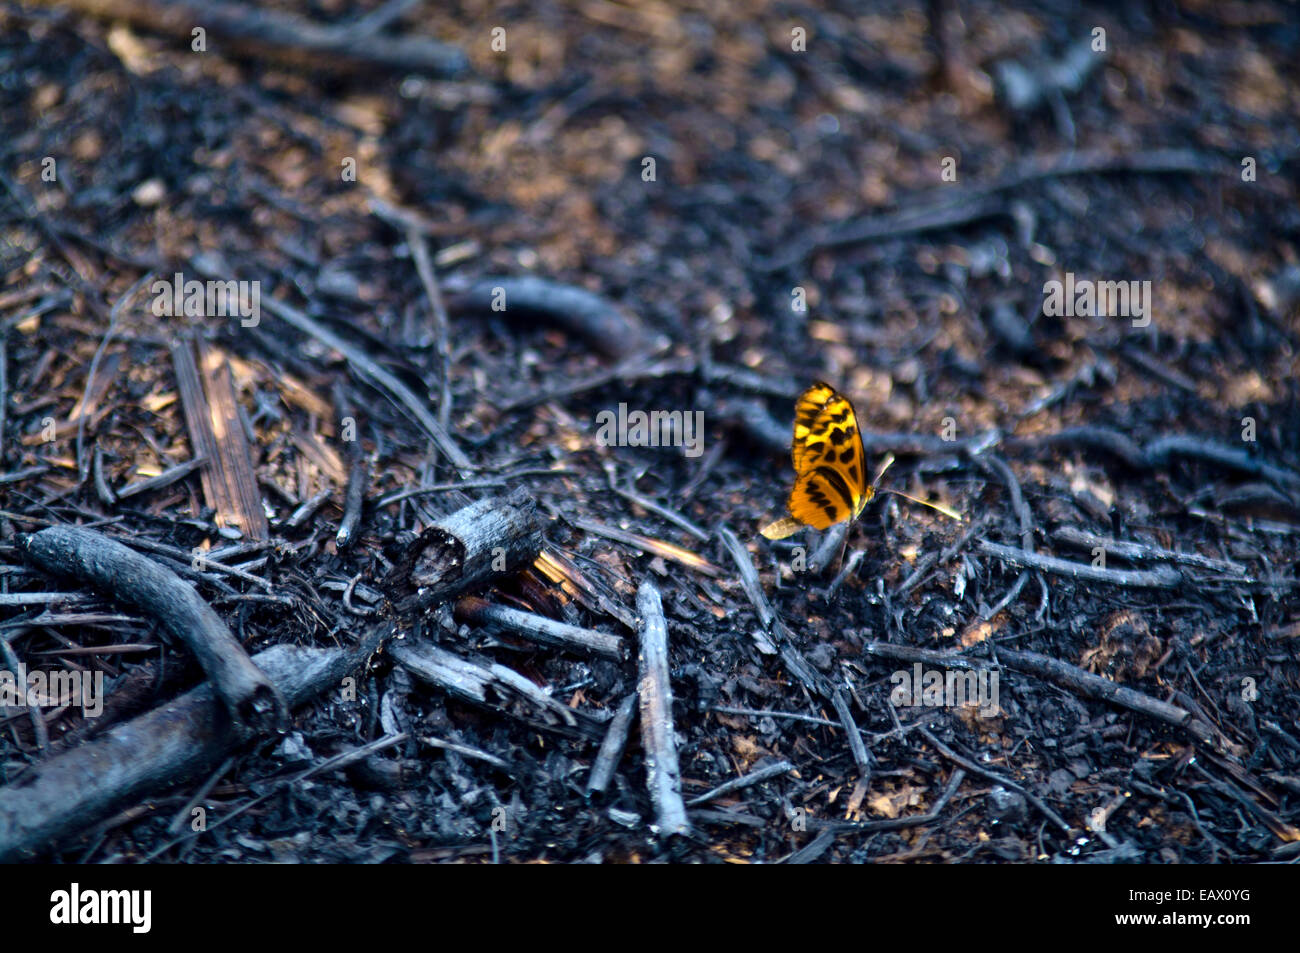 A Passion Flower Butterfly extracting nutrients from charcoal after rainforest was cleared and burned for farmland. - Stock Image